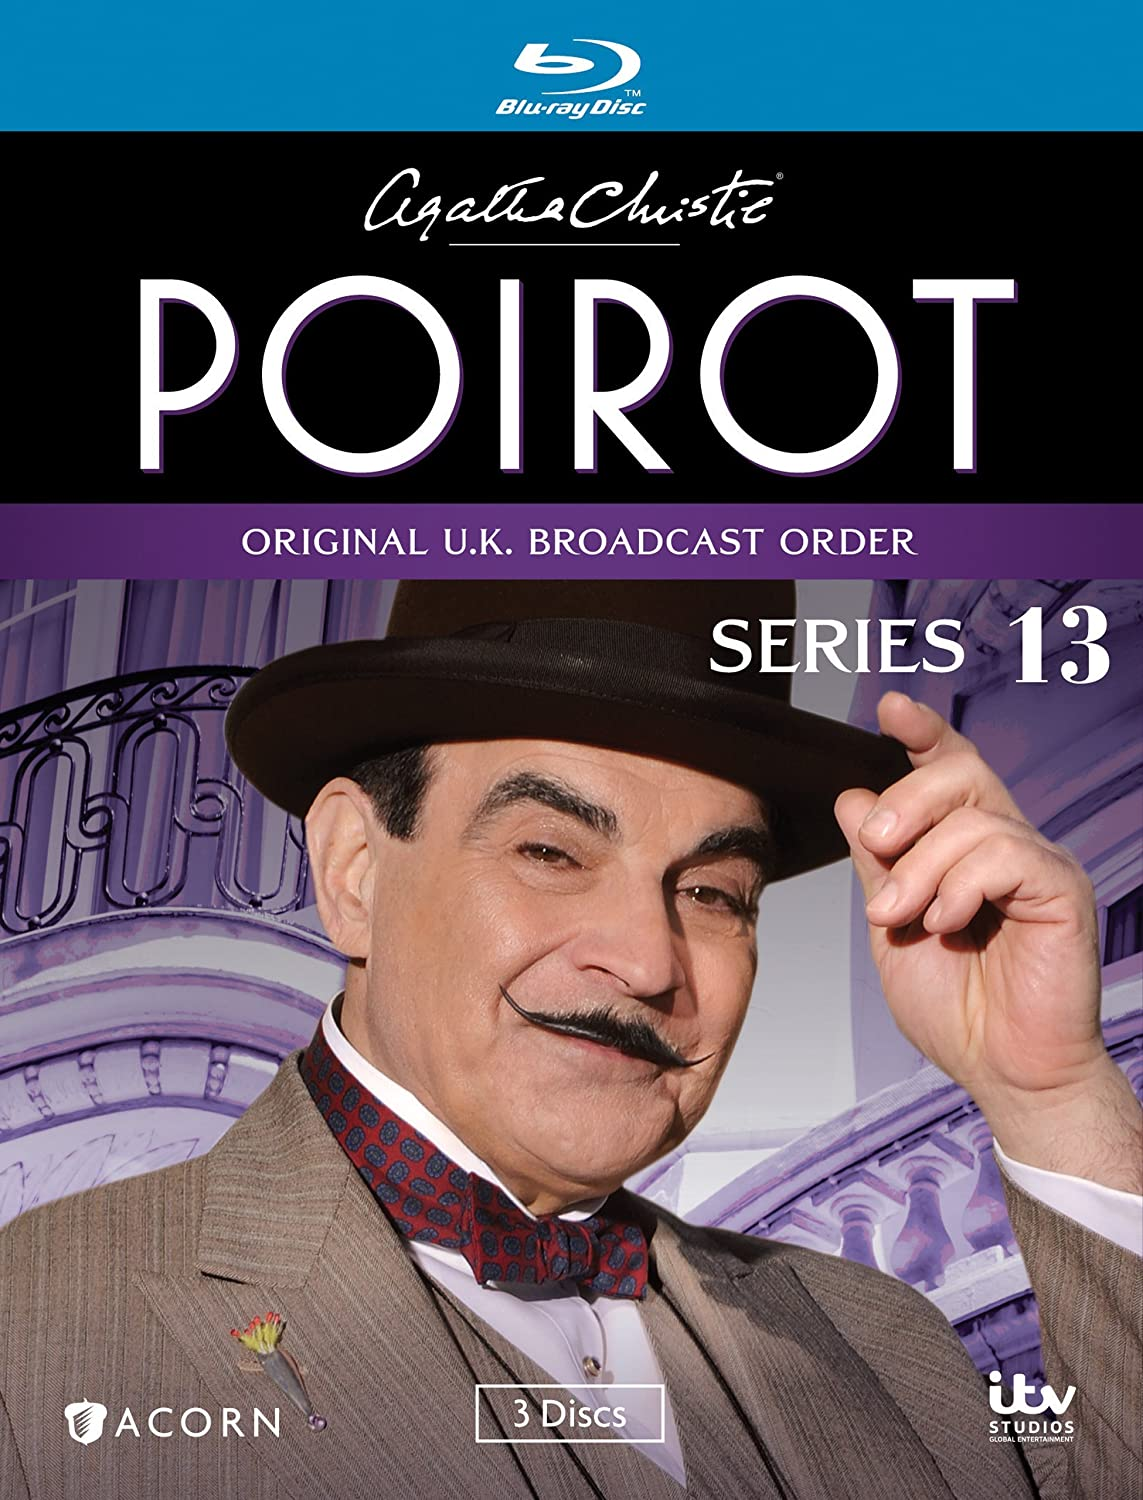 Agatha Christie S Poirot Series 13 Blu Ray David Suchet Hugh Fraser Philip Jackson Pauline Moran Movies Tv